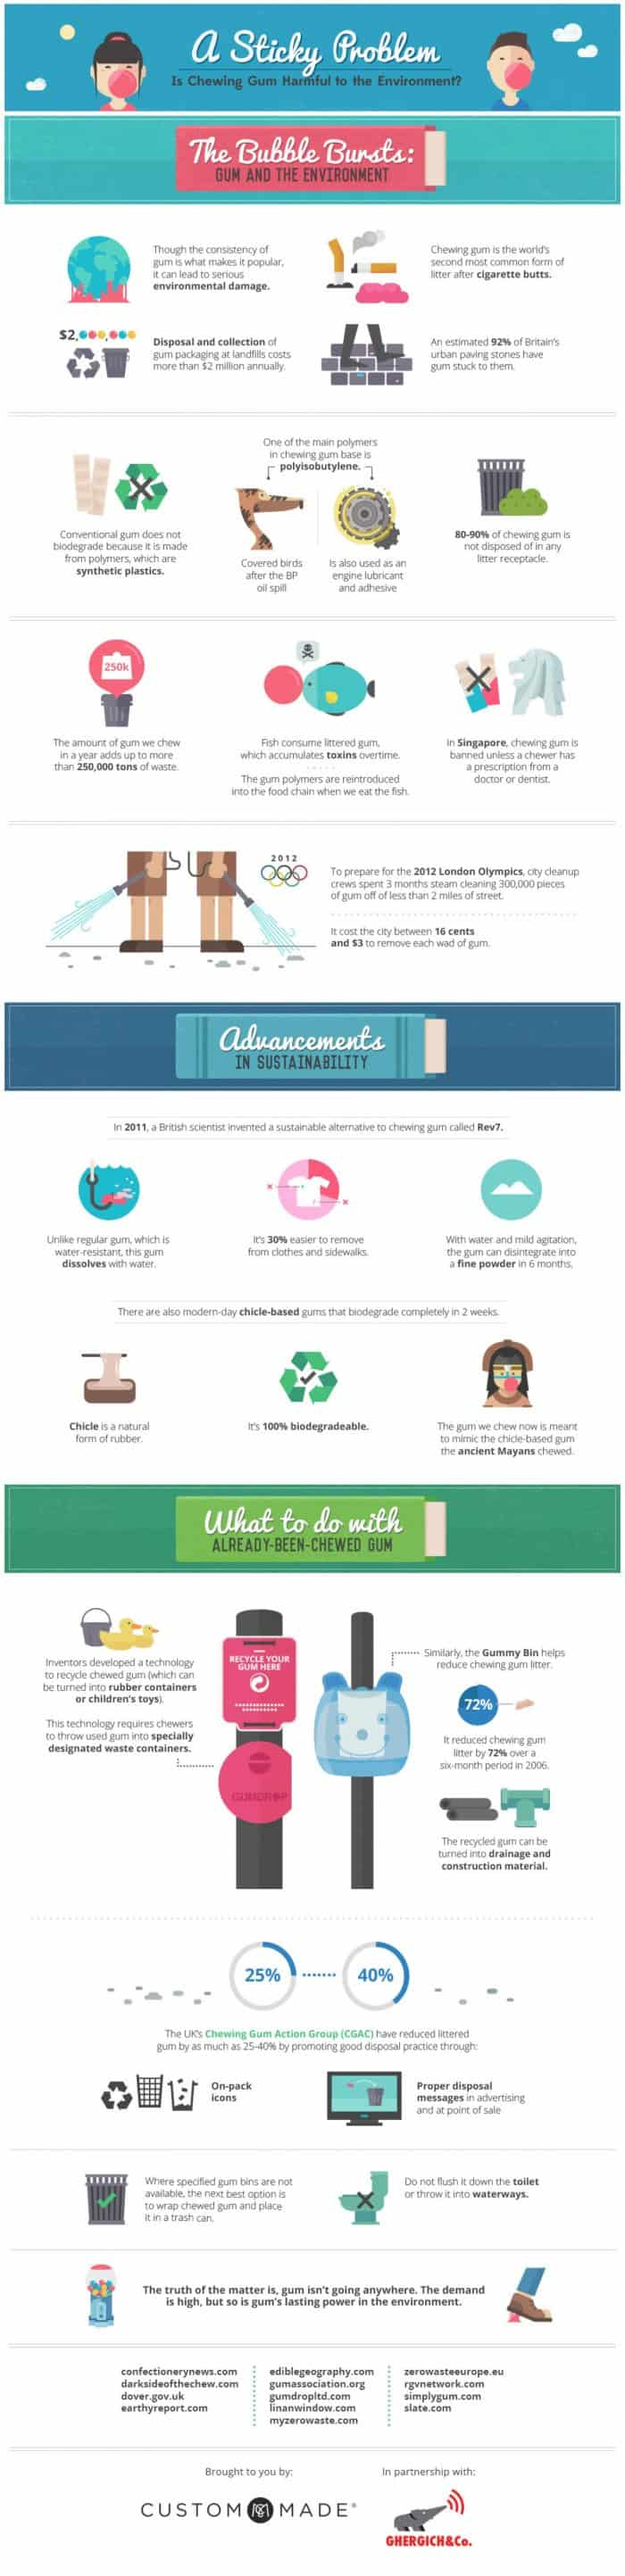 a-sticky-problem-is-chewing-gum-harmful-to-the-environment_54d2d64938b74_w1500